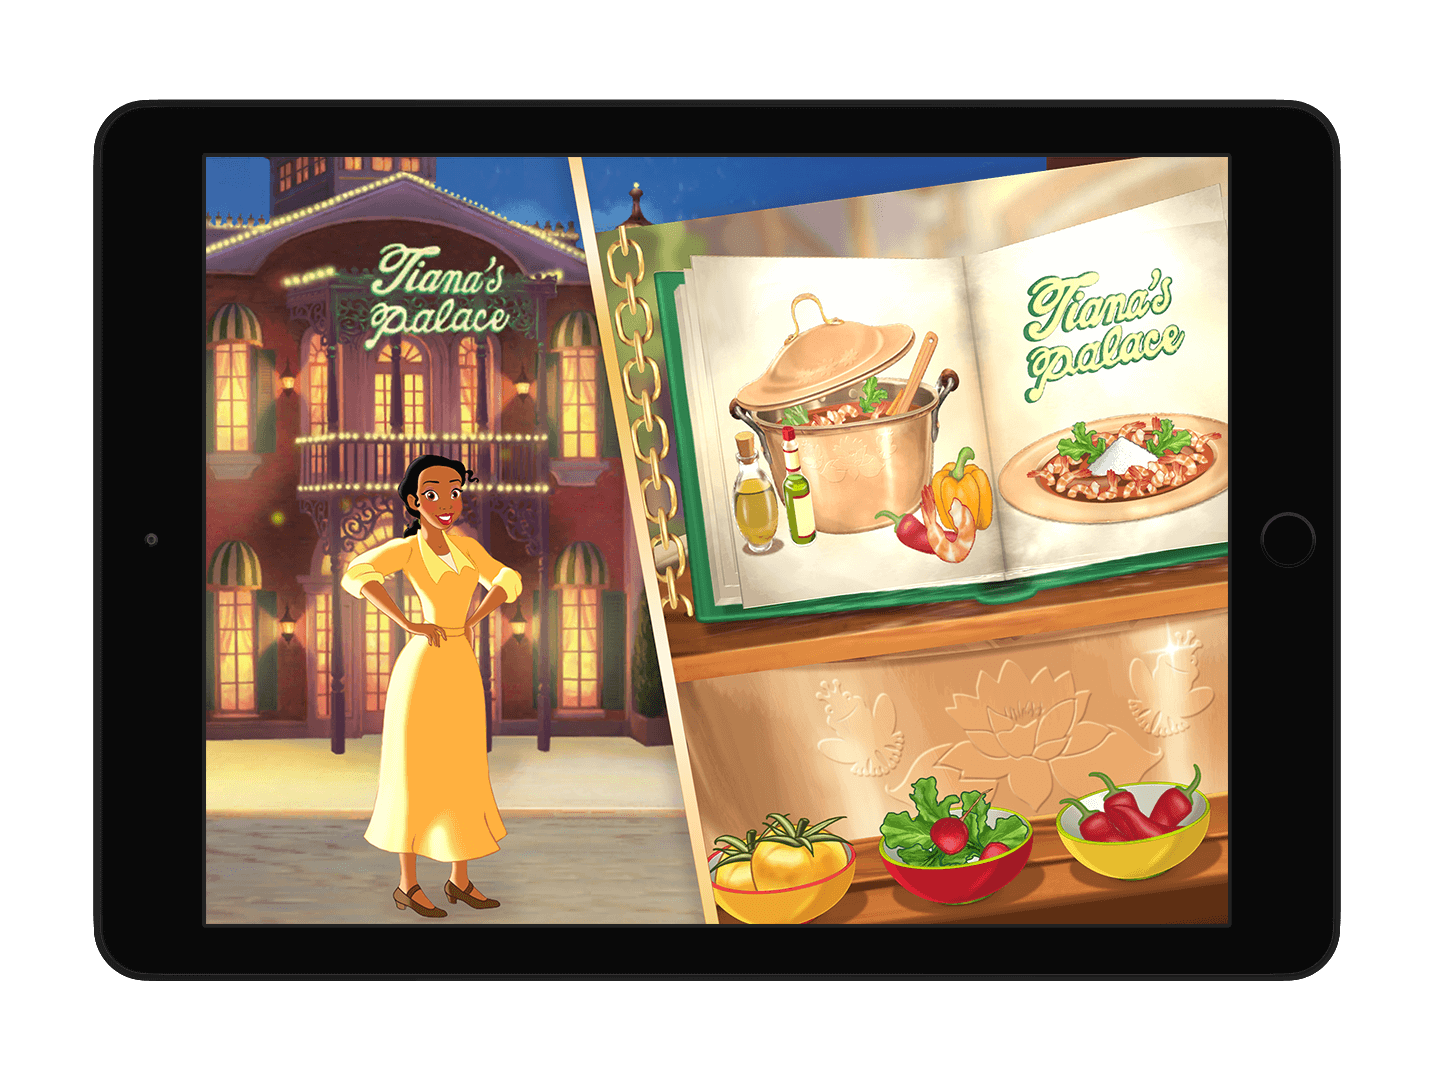 tiana food in context